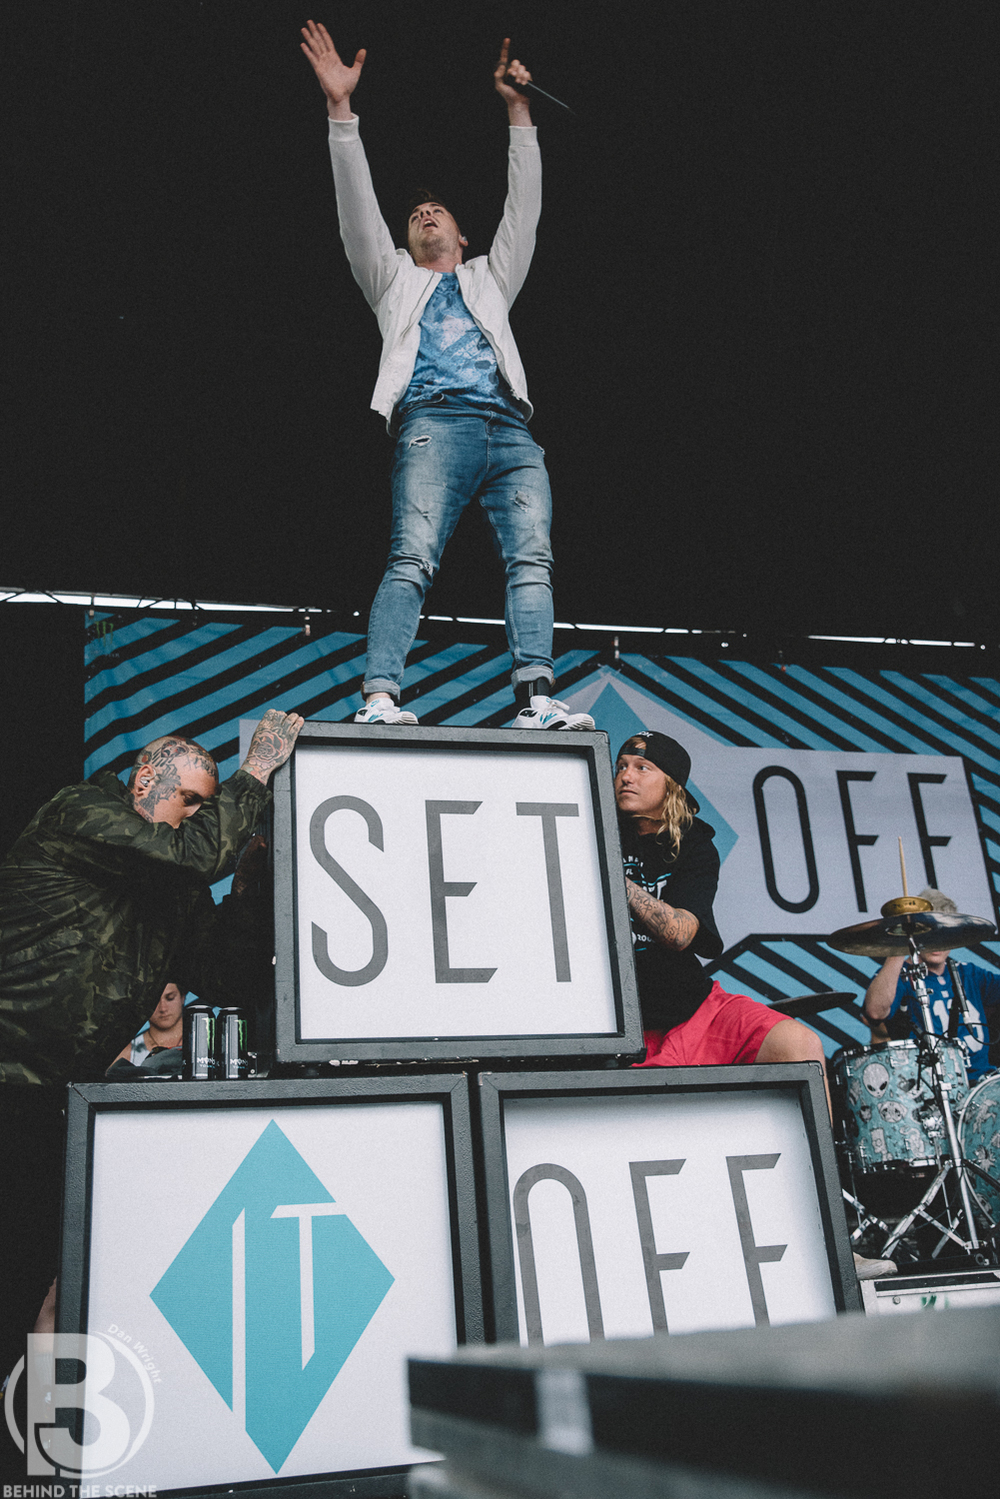 Set It Off-33.jpg